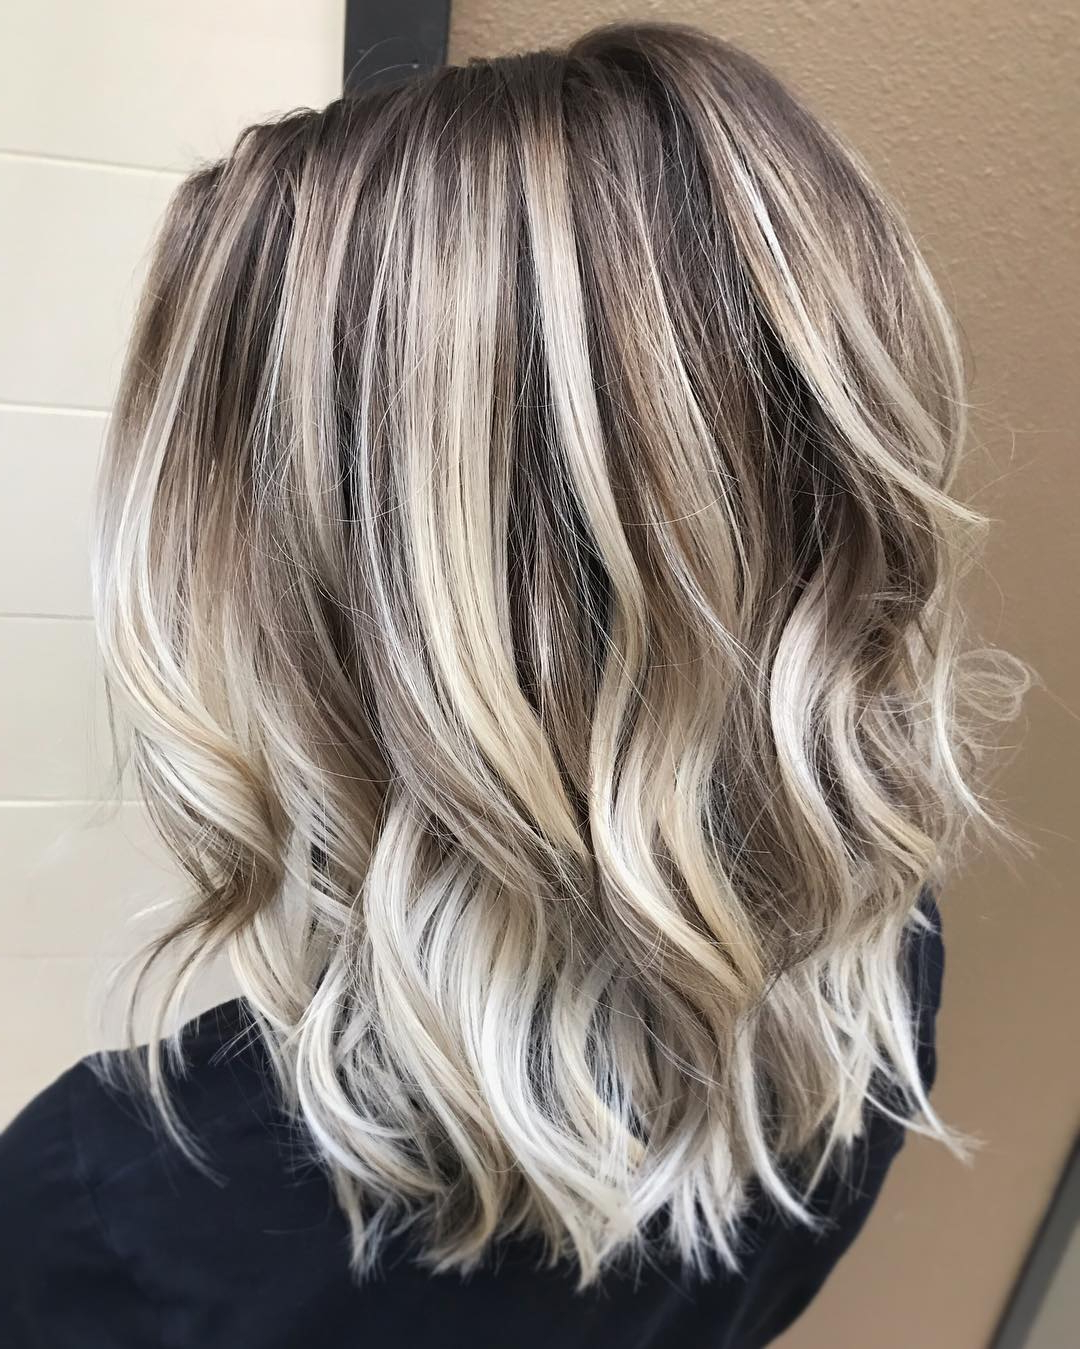 10 Ash Blonde Hairstyles For All Skin Tones, 2018 Best Hair Color Trends Inside Long Blonde Pixie Haircuts With Root Fade (View 1 of 20)